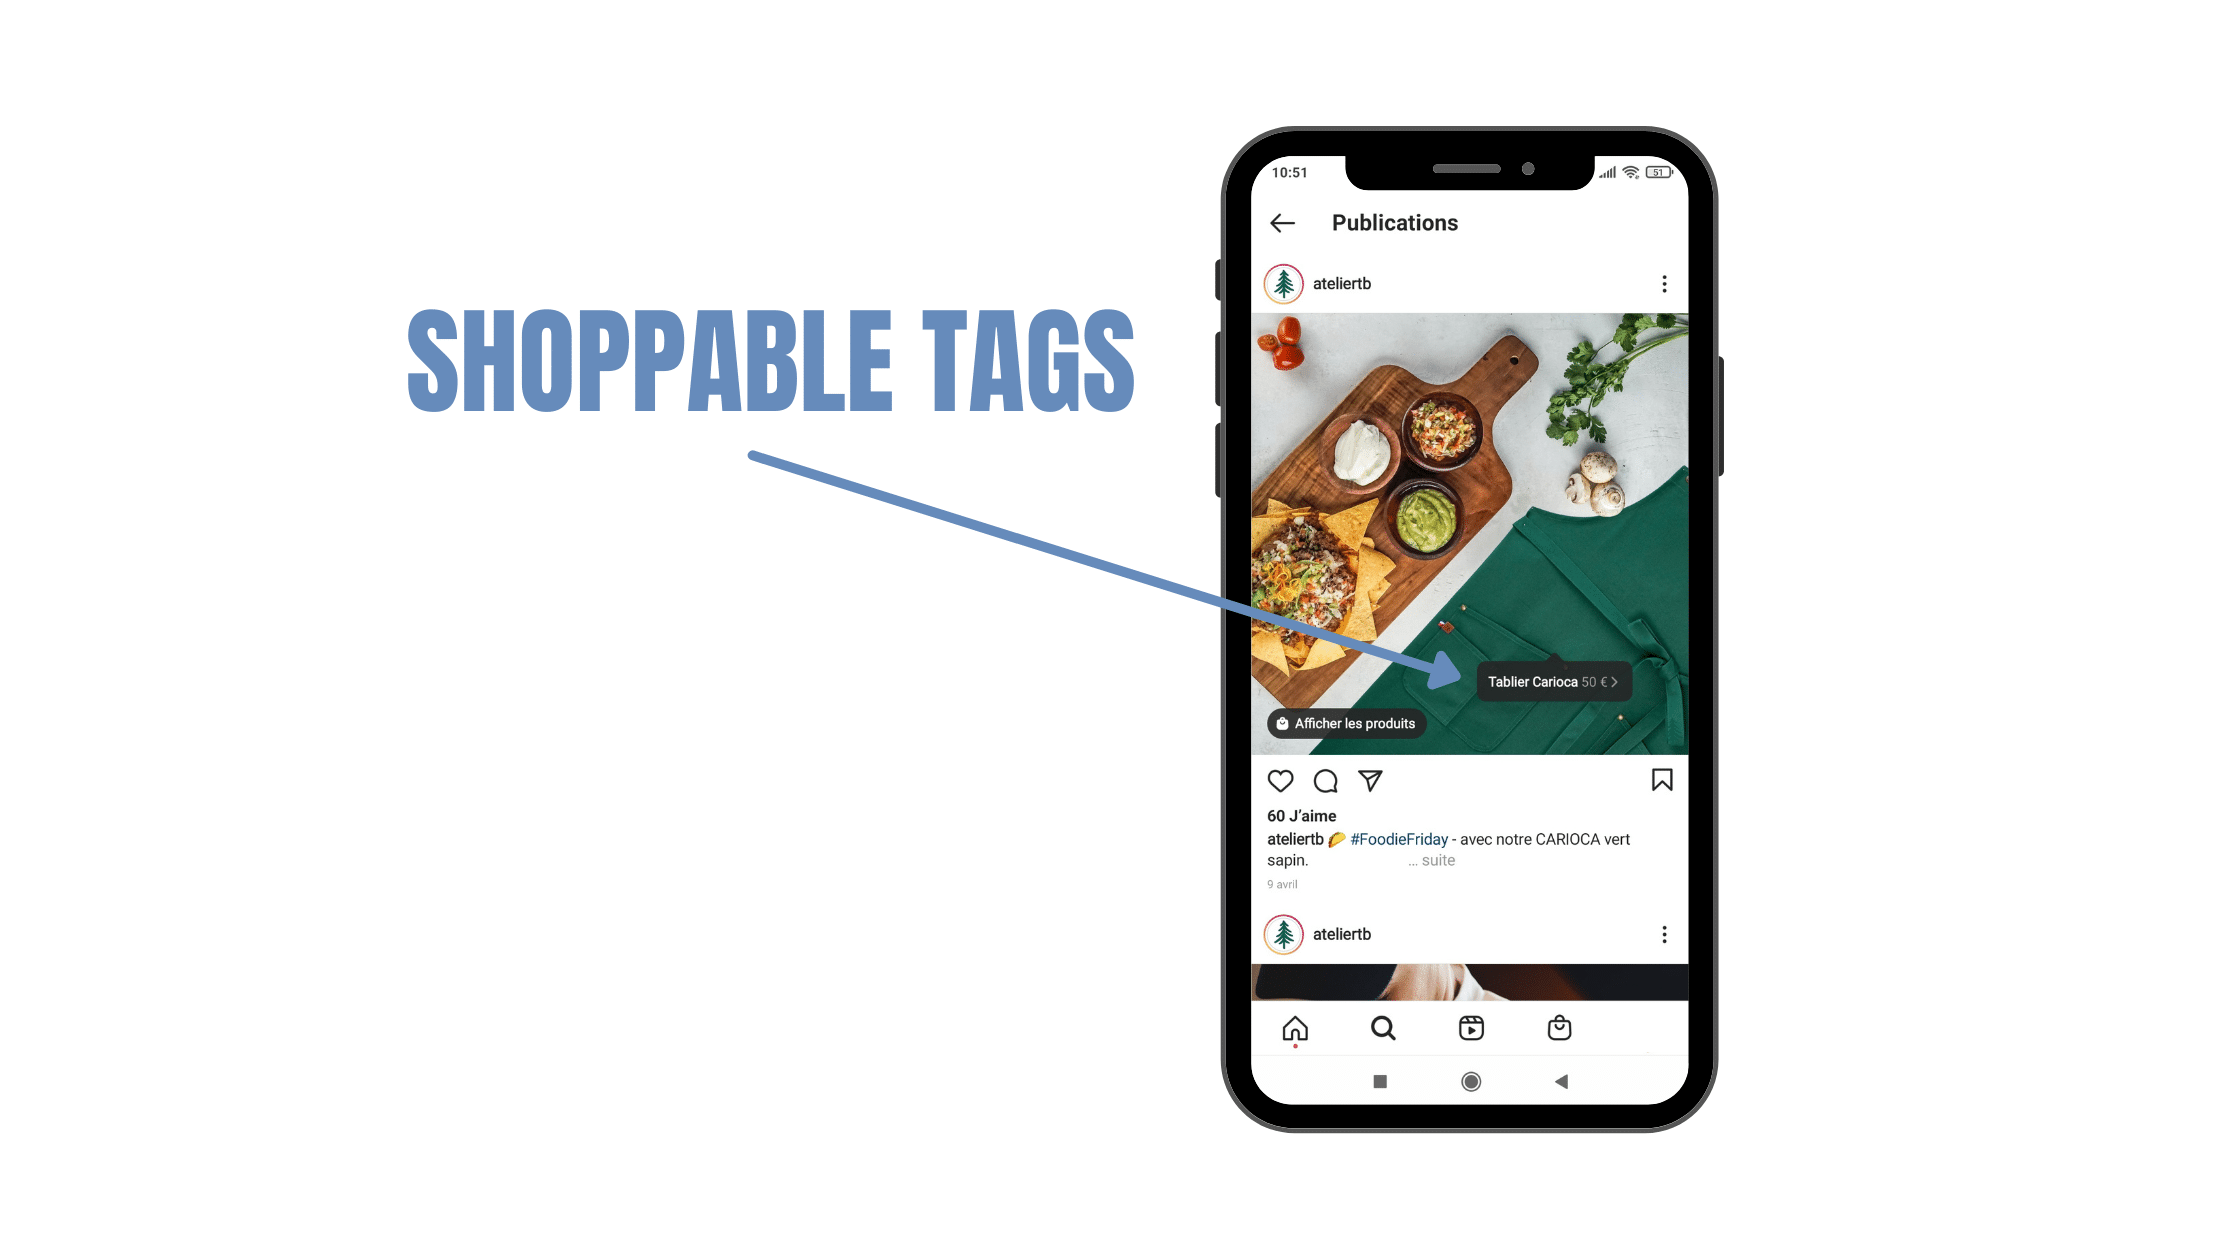 Exemple de Shoppable Tag sur Instagram